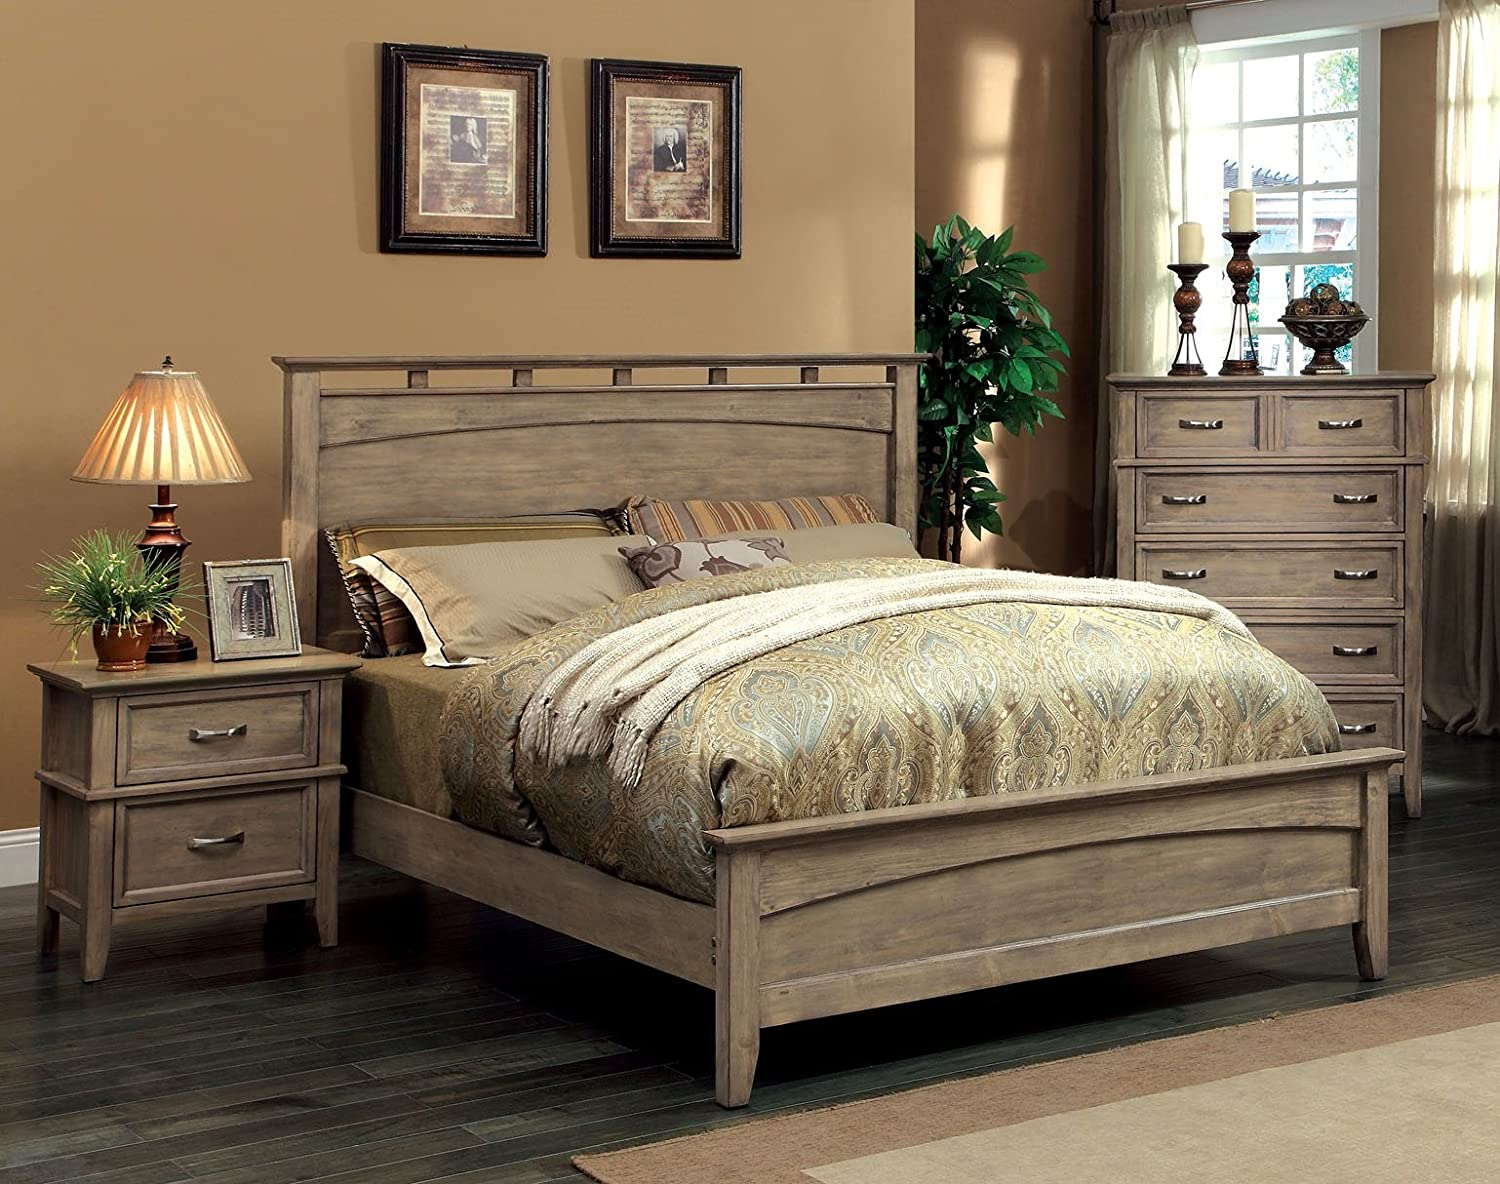 Amazon.com: Furniture of America Vine II Rustic Style Solid Wood Bed ...